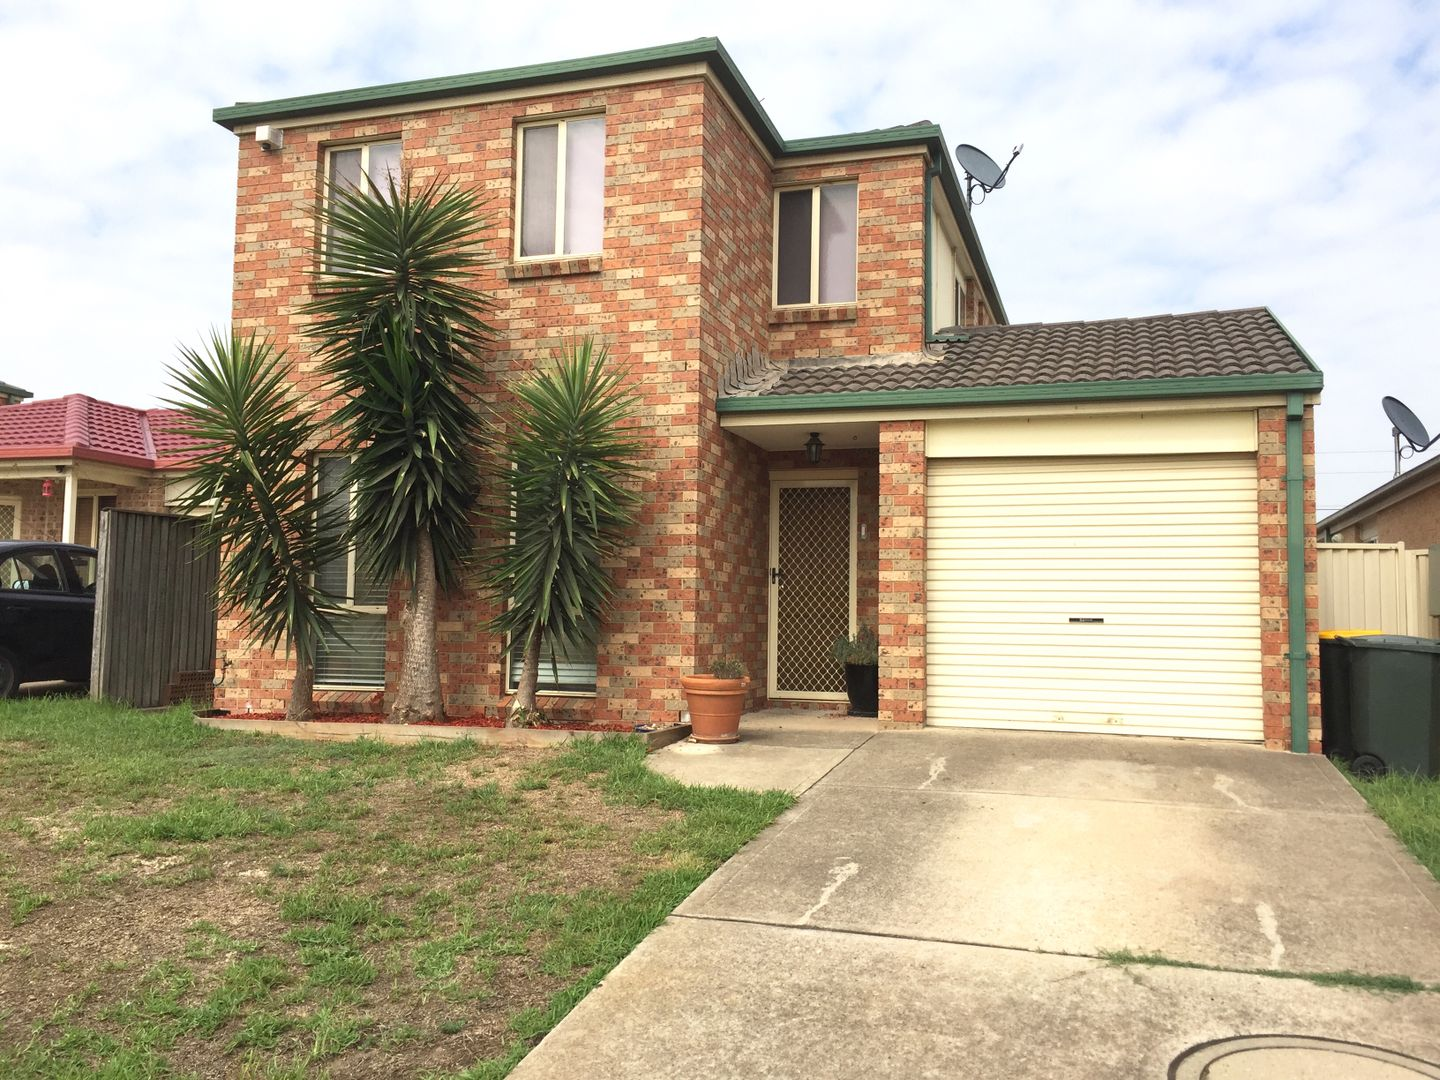 71 Manorhouse Blvd, Quakers Hill NSW 2763, Image 0